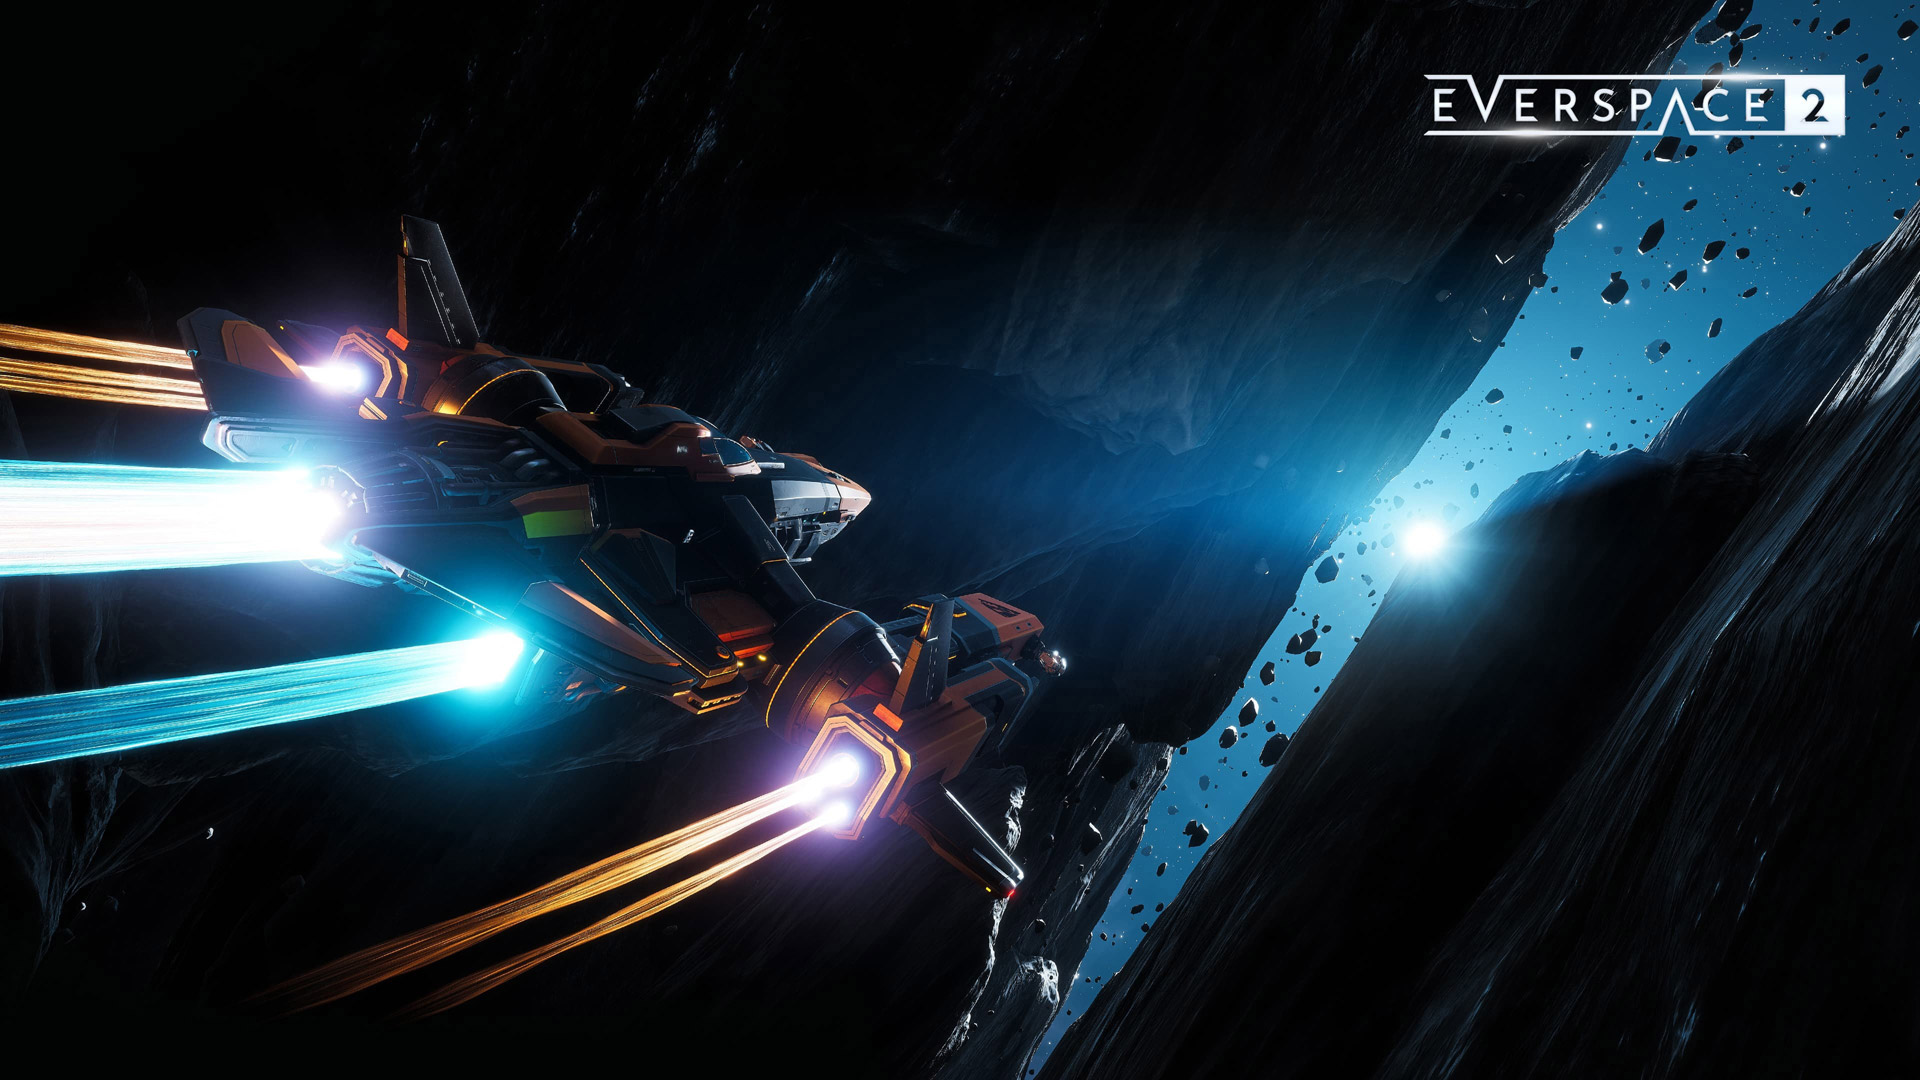 Free Everspace 2 Wallpaper in 1920x1080